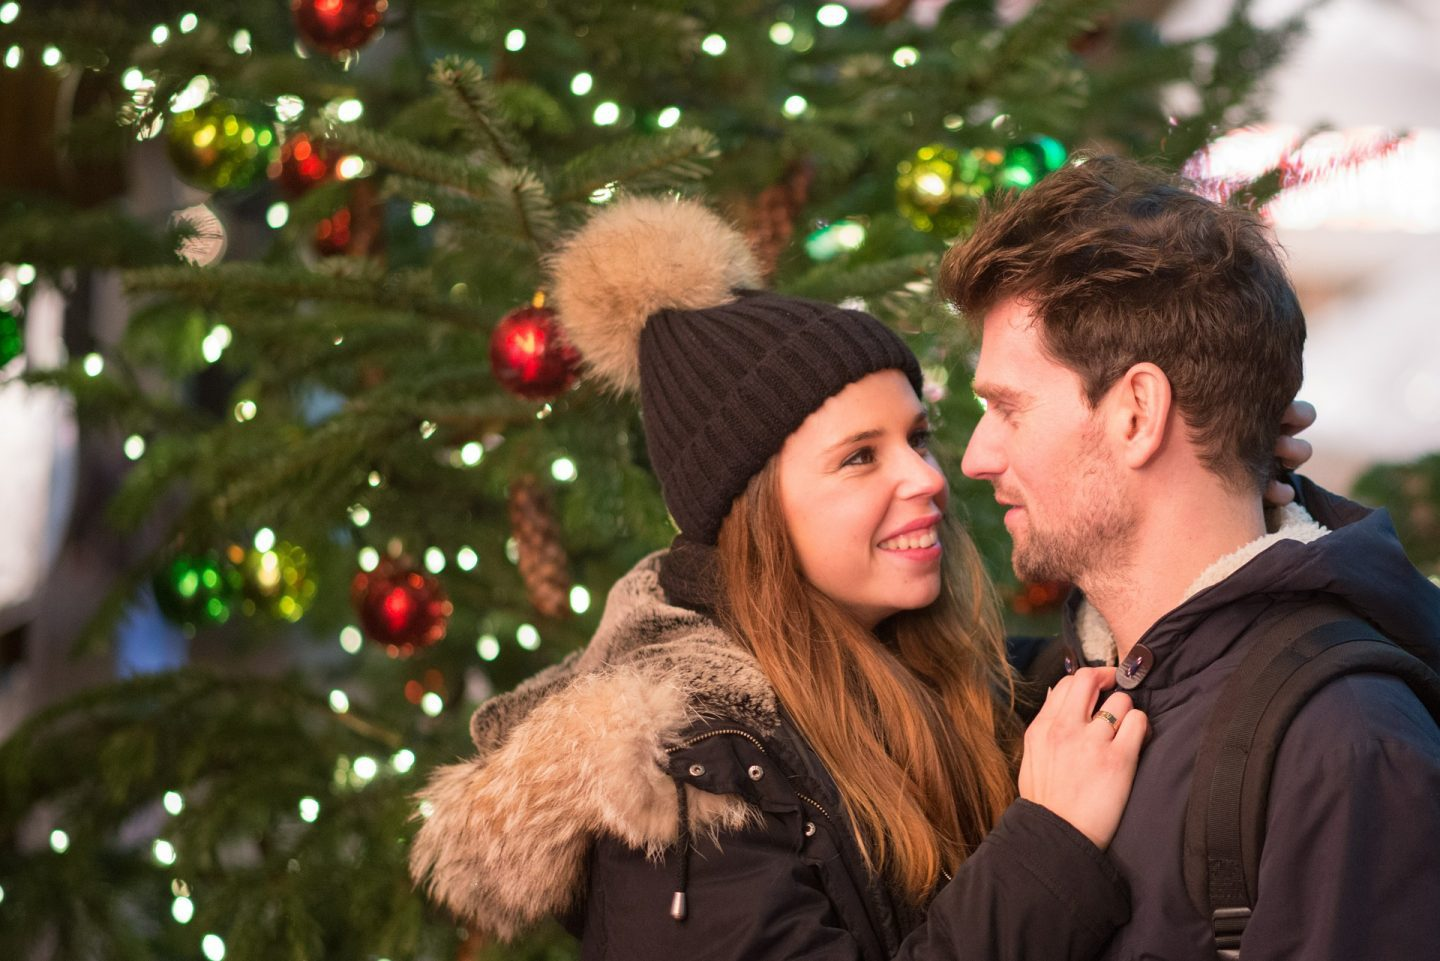 A man and a woman in a bobble hat are looking in to each others eyes in front of a Christmas tree.